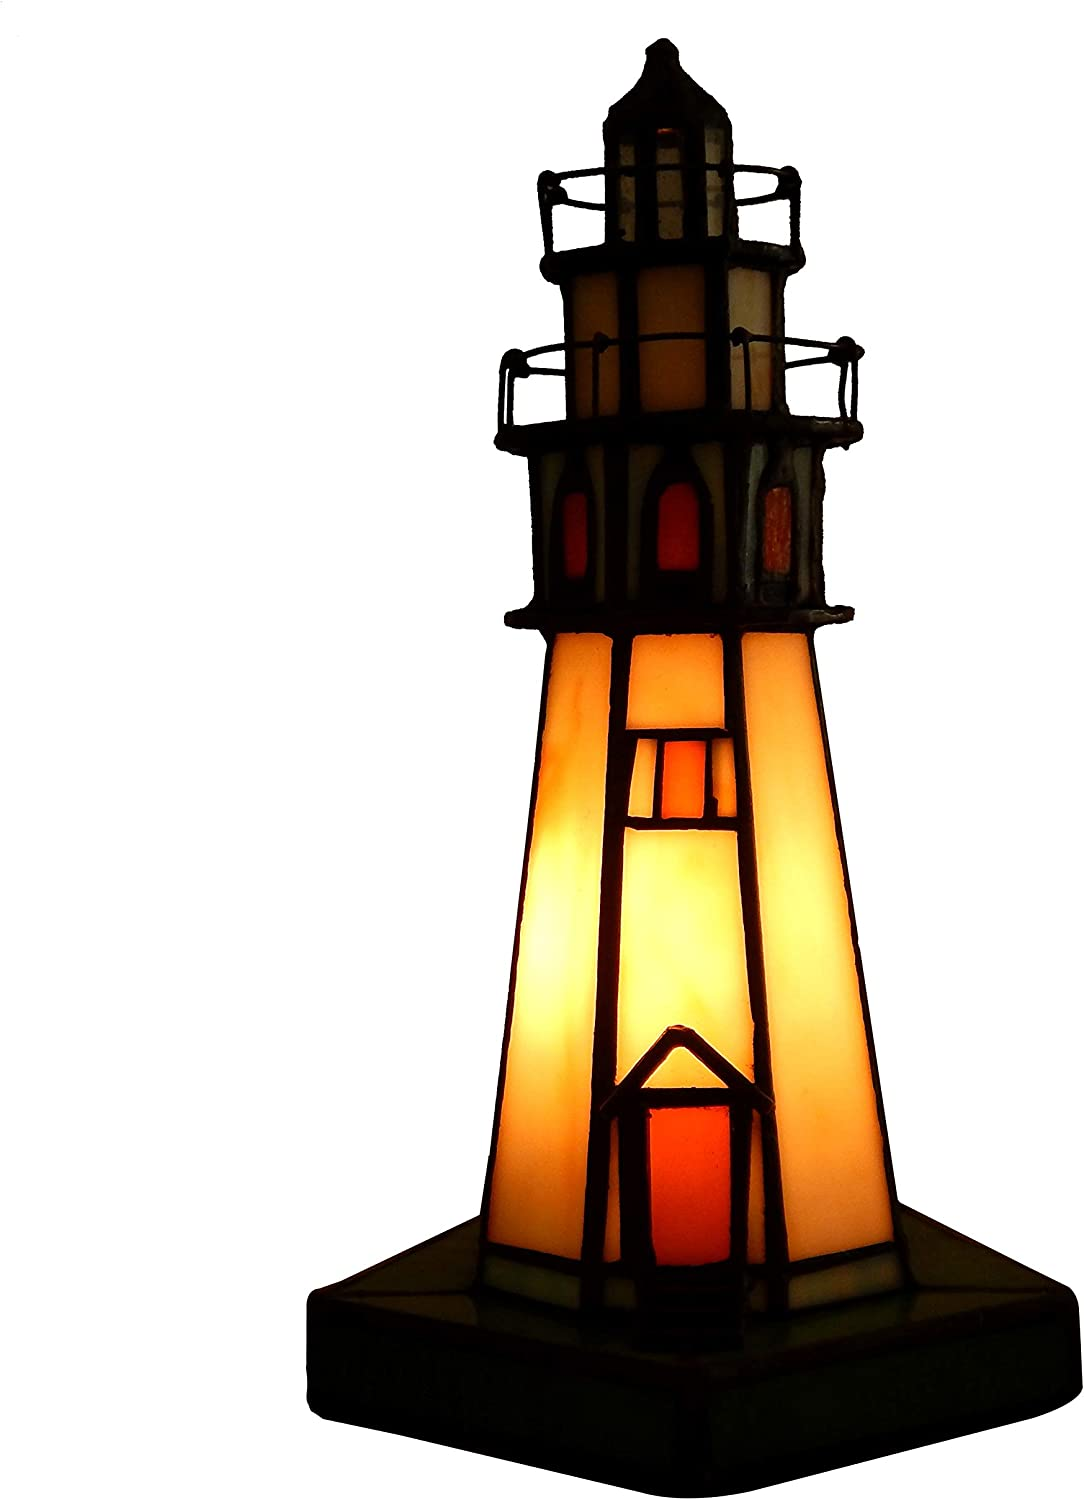 Genuine Stained Glass Table Lamp Featuring a Majestic Rocky Coast Lighthouse Design. Accented with Lookout Windows and Observation Platforms. The Perfect Gift for Any Loved-one, Kitchen or Room